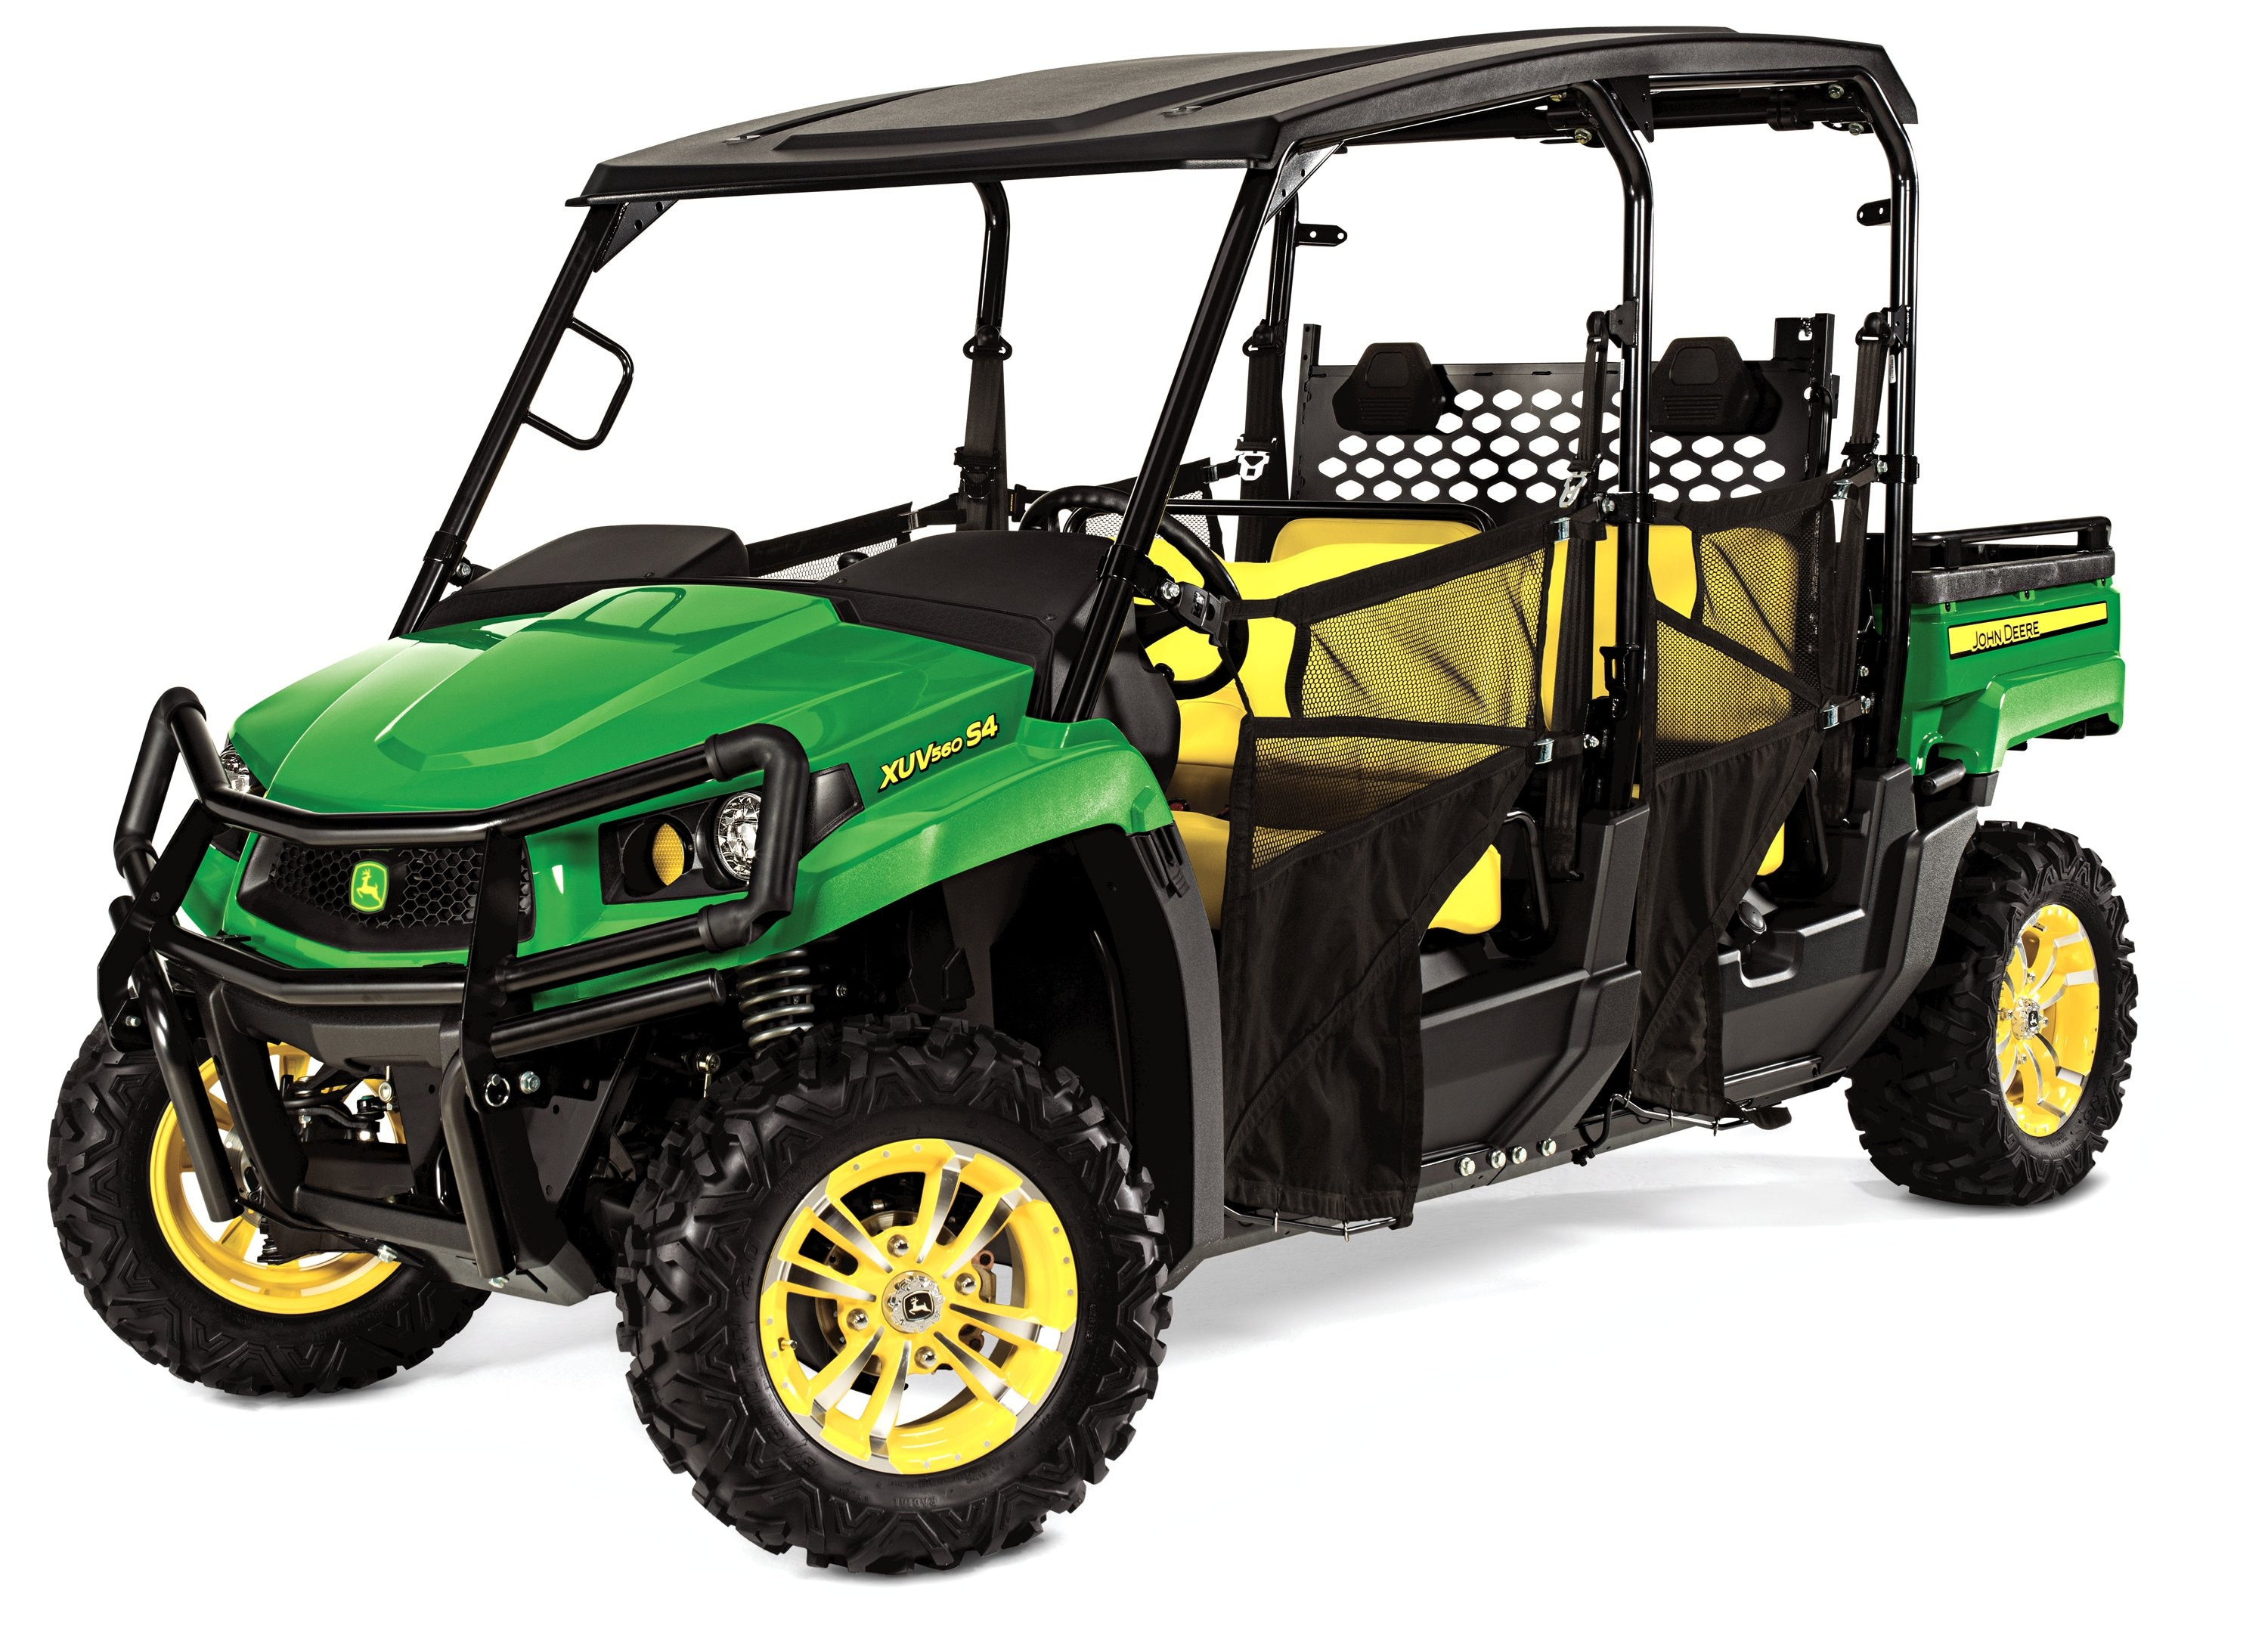 John Deere Enhances Family of Gator™ Utility Vehicles with Mid-Size Model